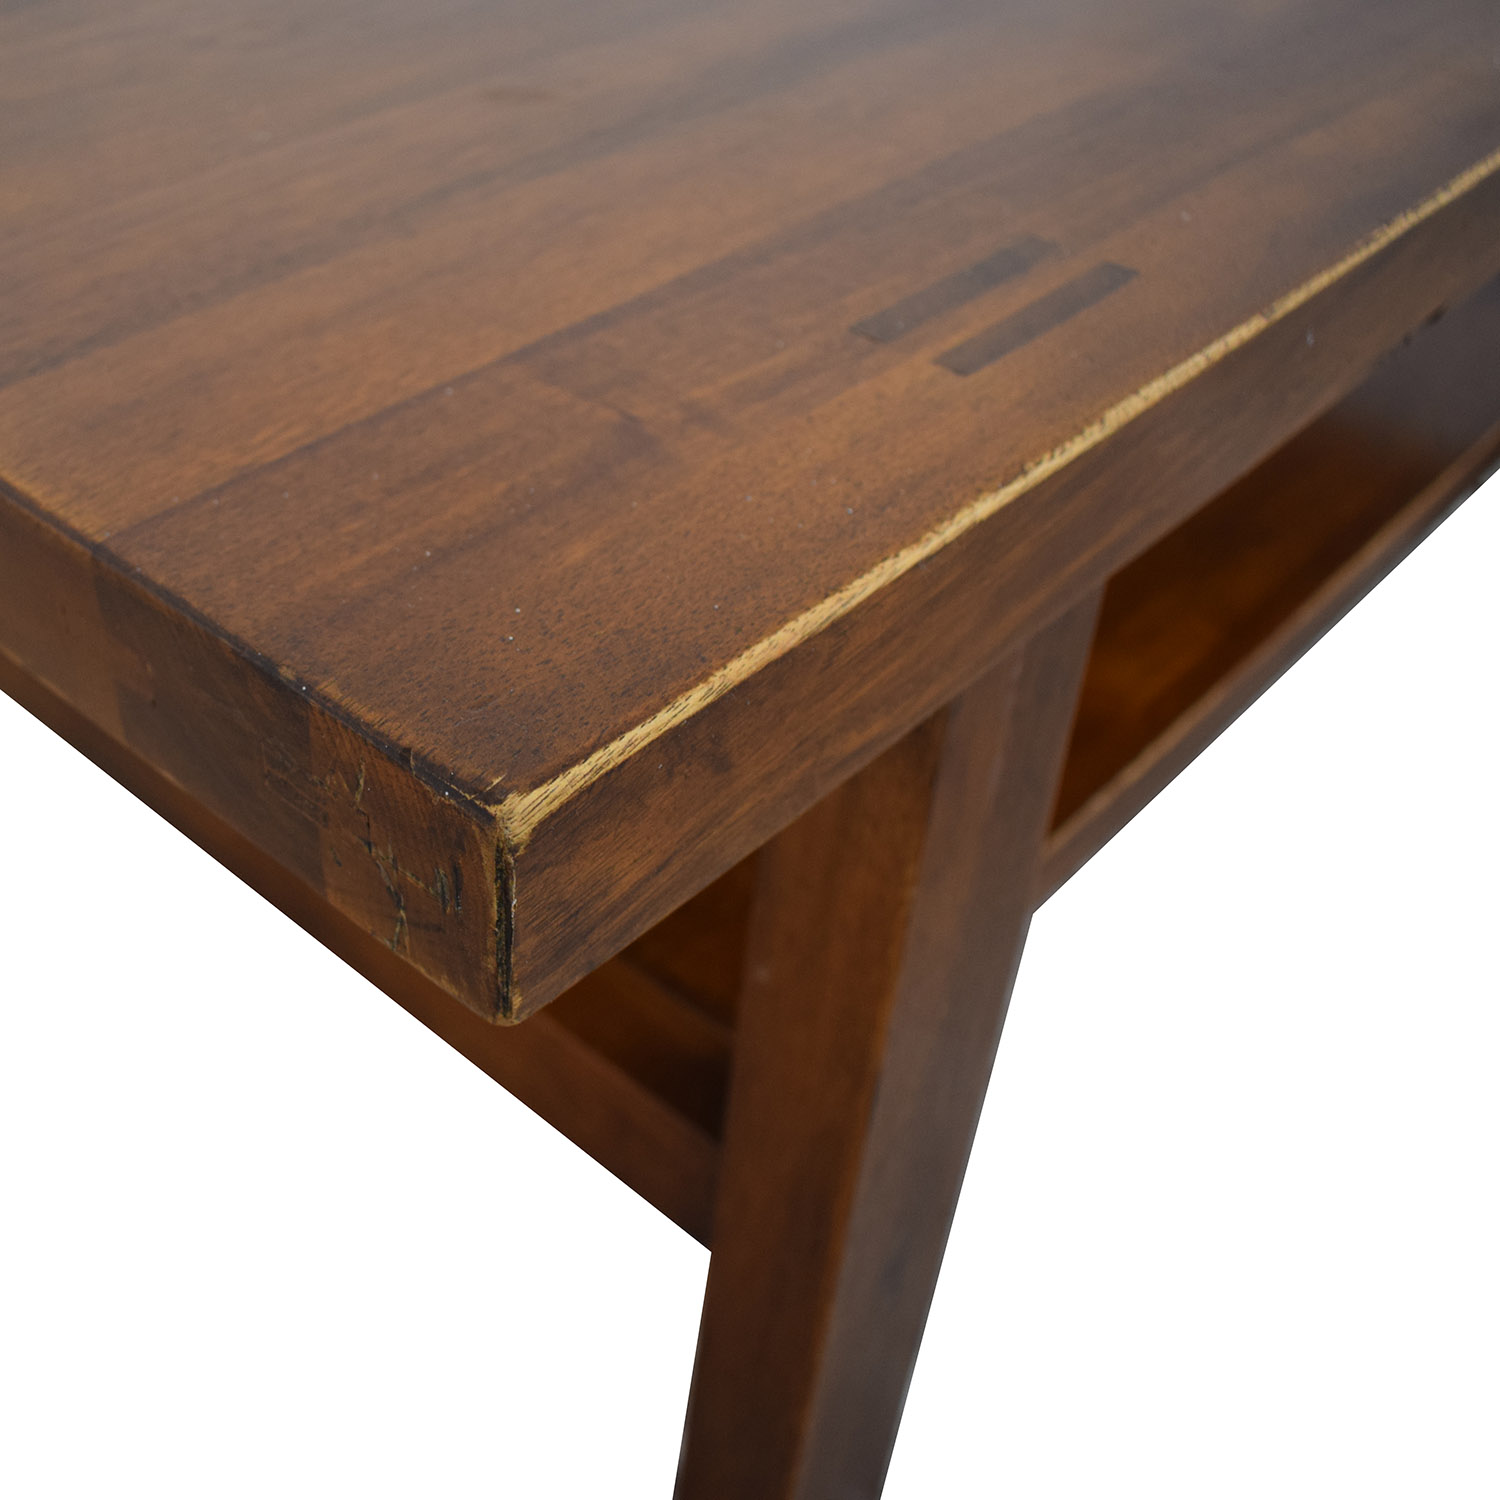 Two Tiered Rectangular Coffee Table for sale